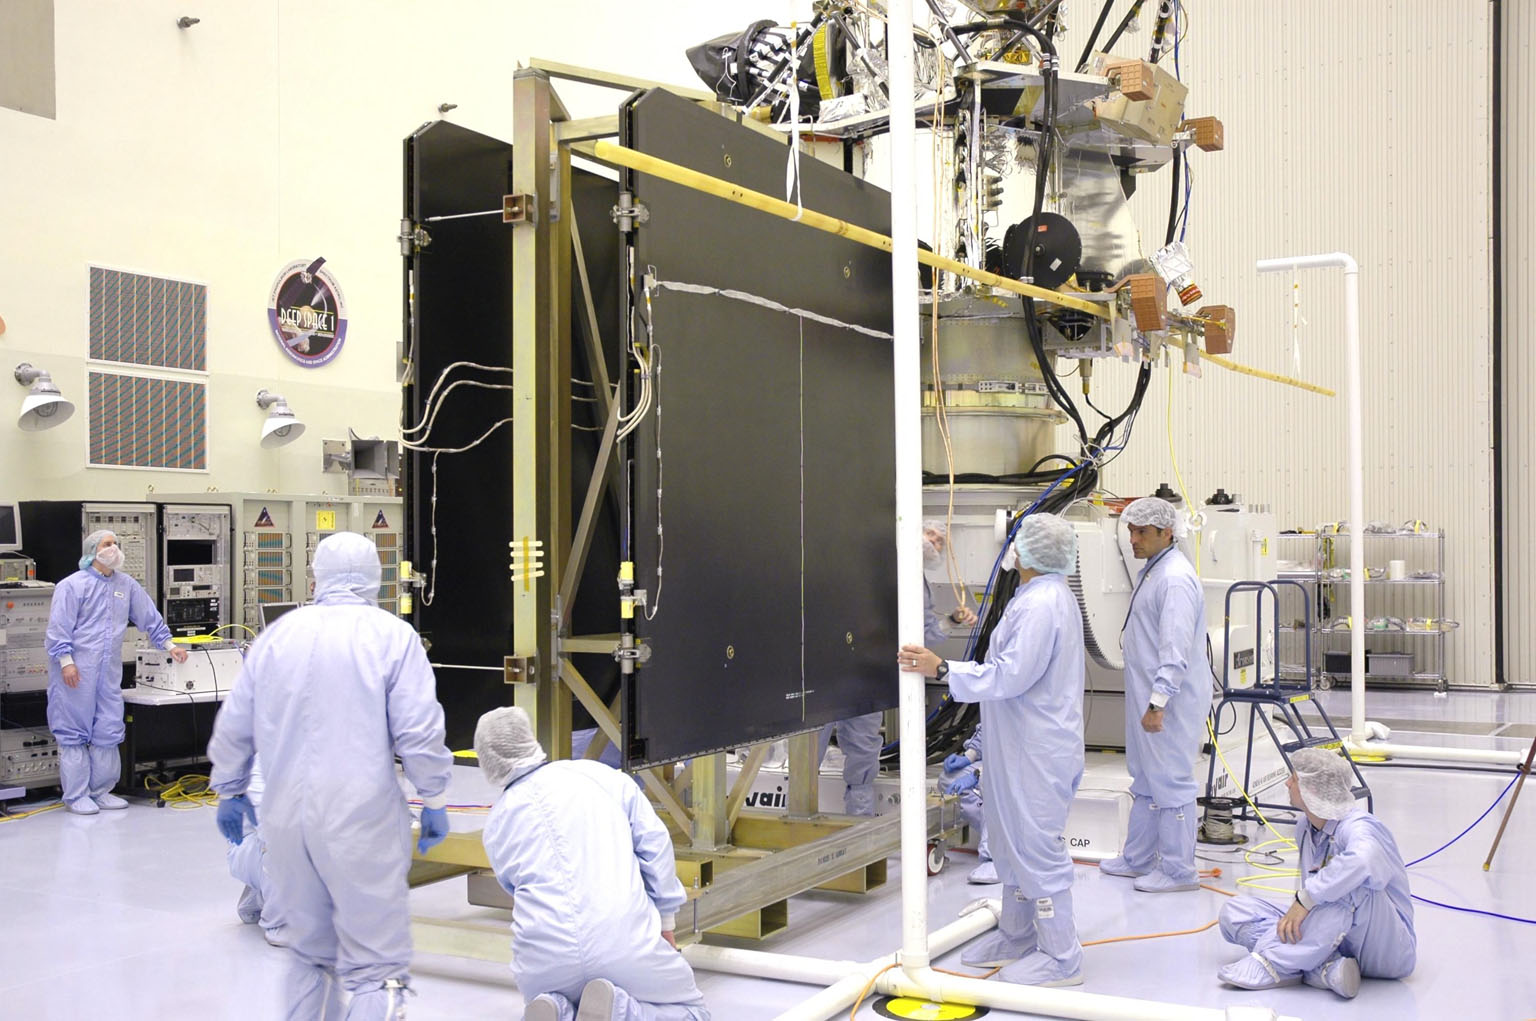 KENNEDY SPACE CENTER, FLA. - In the Payload Hazardous Servicing Facility, technicians prepare the solar arrays for the Mars Reconnaissance Orbiter (MRO) and an antenna simulator (yellow horizontal rod) for an electromagnetic interference verification test. If no interference is found during the test, the Shallow Radar Antenna (SHARAD) will be installed on the spacecraft. The spacecraft is undergoing multiple mechanical assembly operations and electrical tests to verify its readiness for launch. The MRO was built by Lockheed Martin for NASA?s Jet Propulsion Laboratory in California. It is the next major step in Mars exploration and scheduled for launch from Launch Complex 41 at Cape Canaveral Air Force Station in a window opening Aug. 10. The MRO is an important next step in fulfilling NASA?s vision of space exploration and ultimately sending human explorers to Mars and beyond.